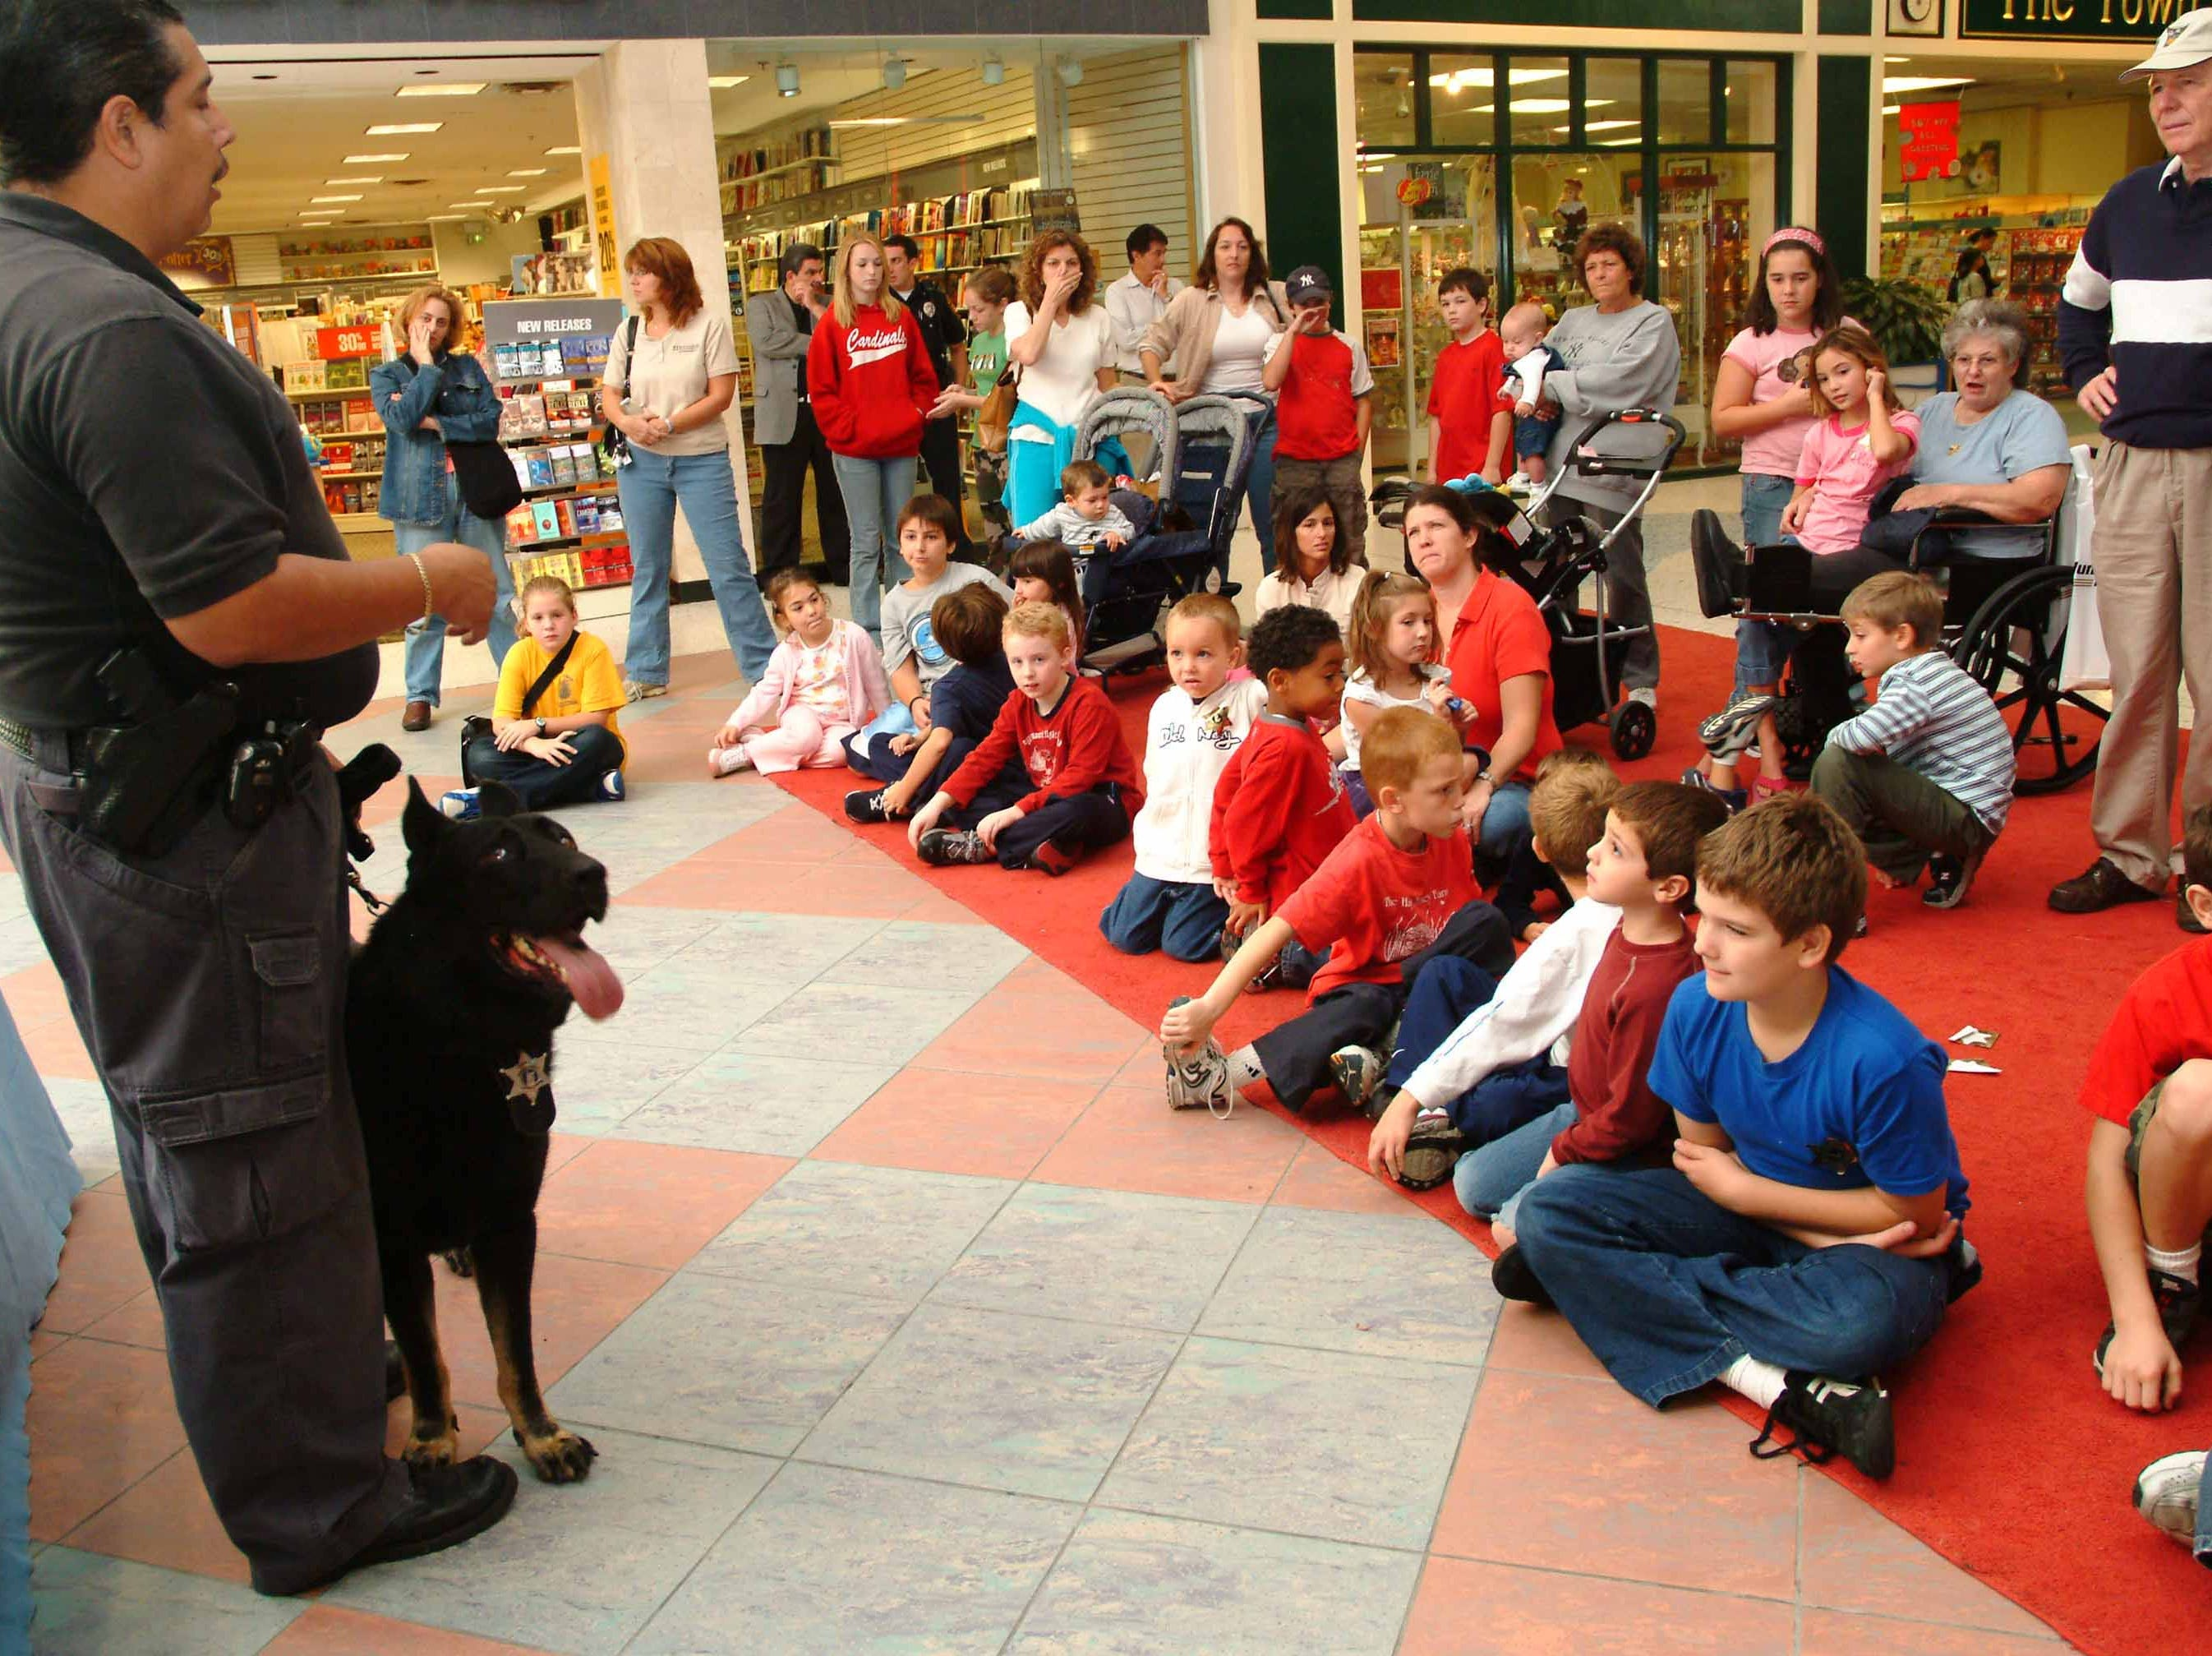 Passaic County Sheriff's Department K-9 demonstration held at Wayne Hills Mall before the stores began to shut their doors.